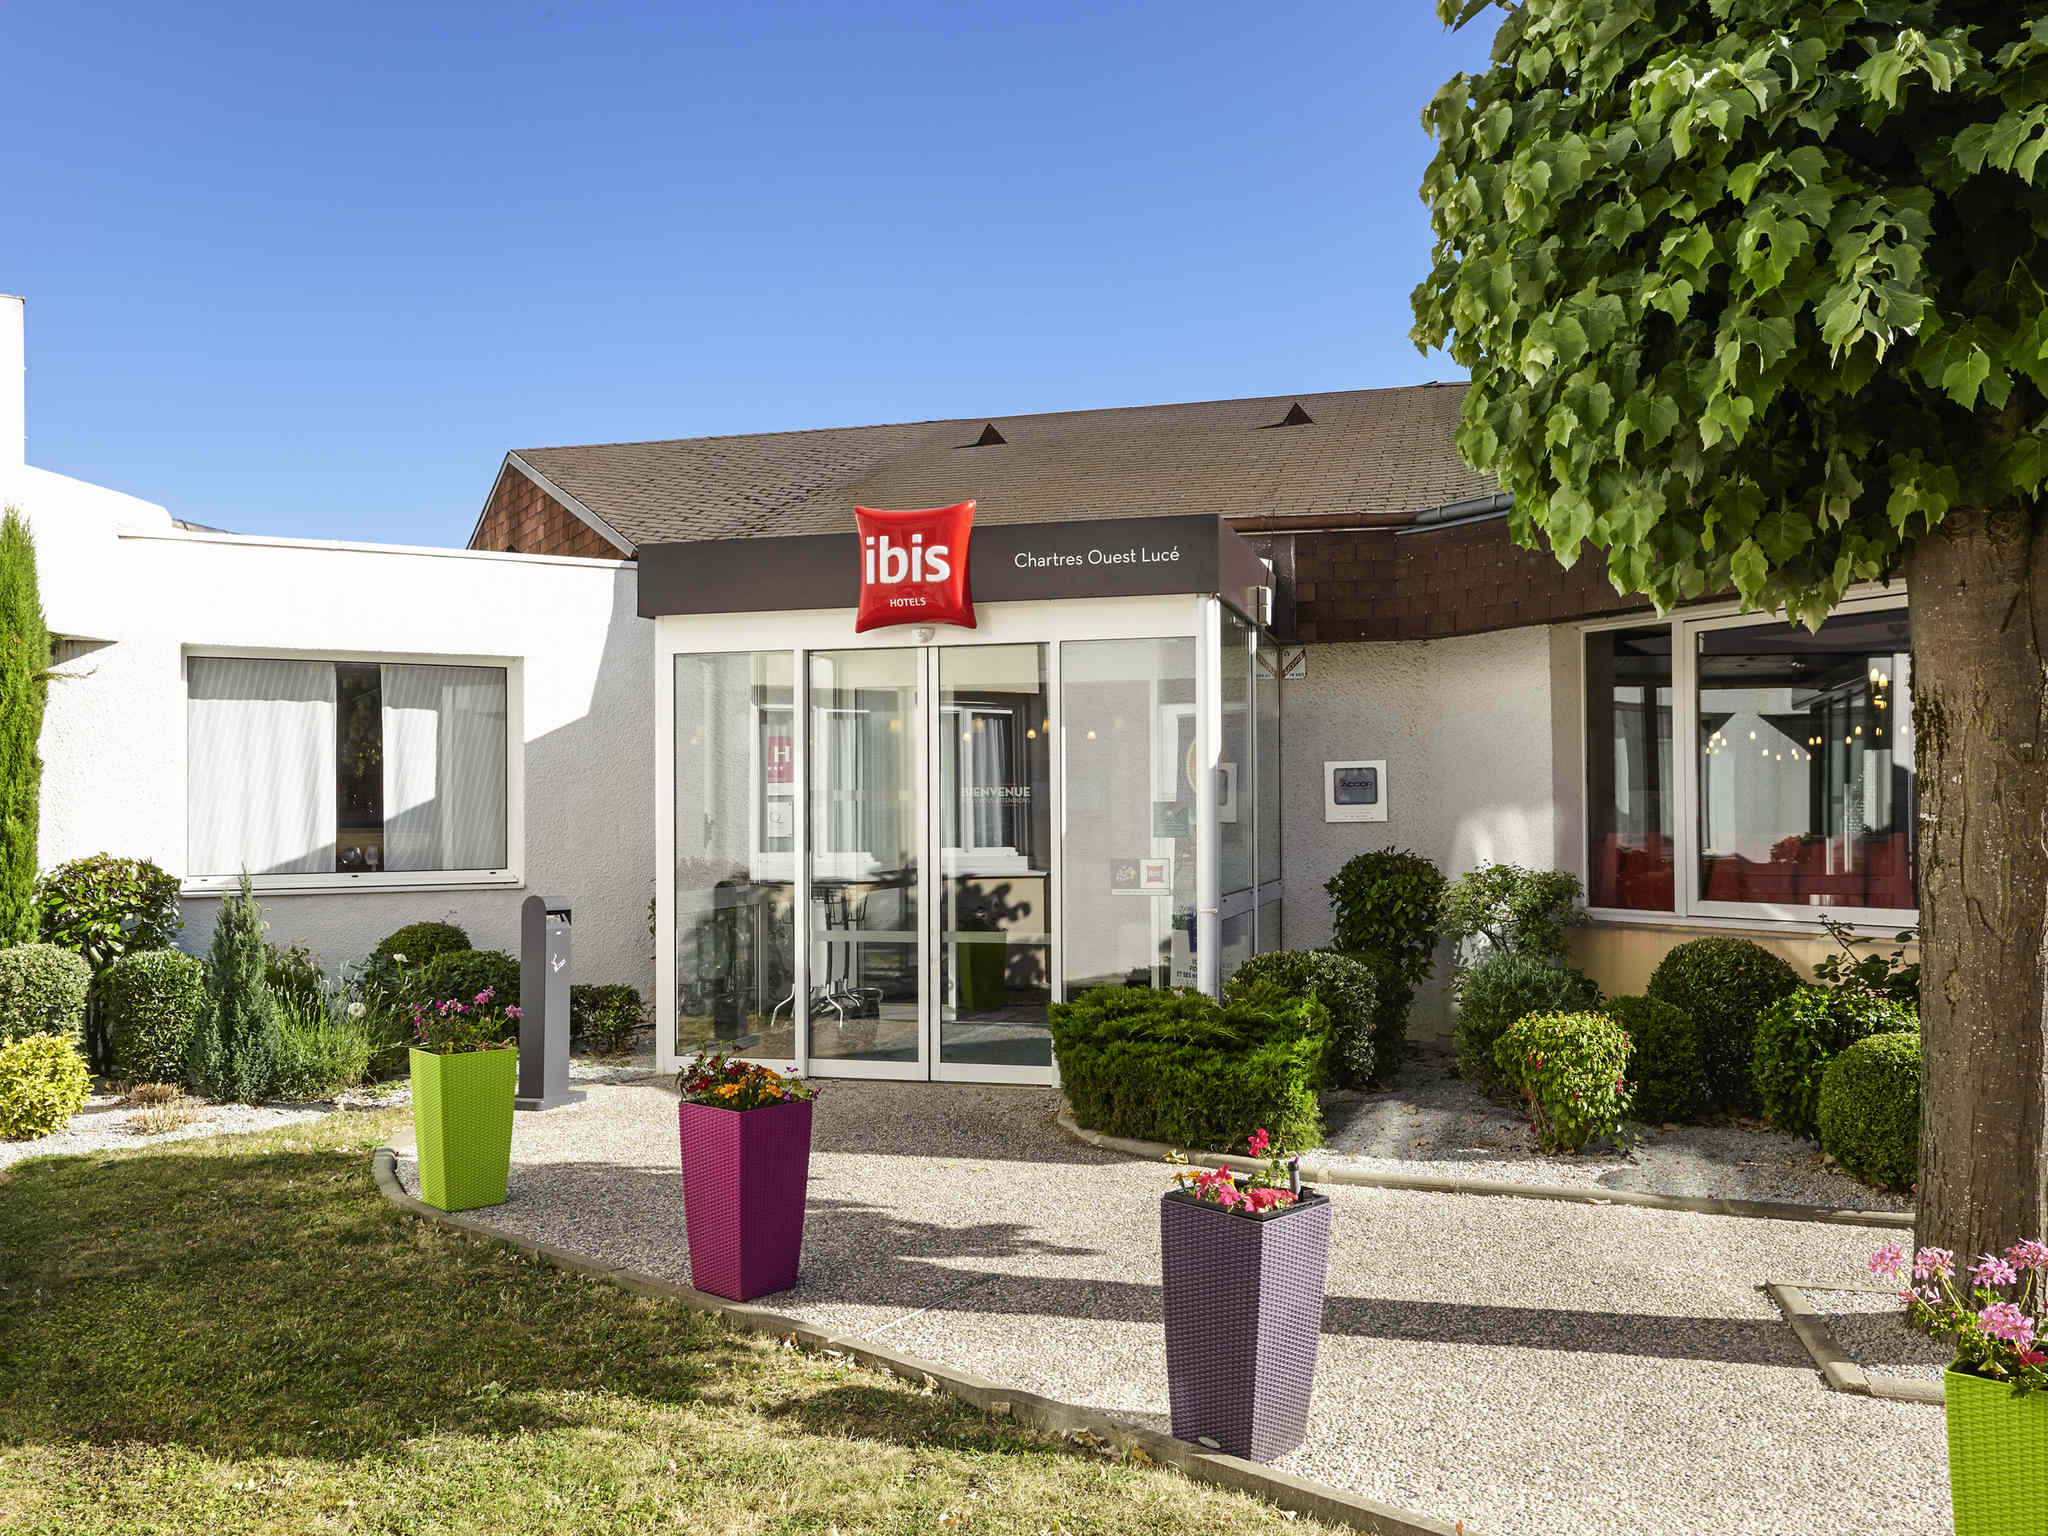 Otel – ibis Chartres Ouest Lucé